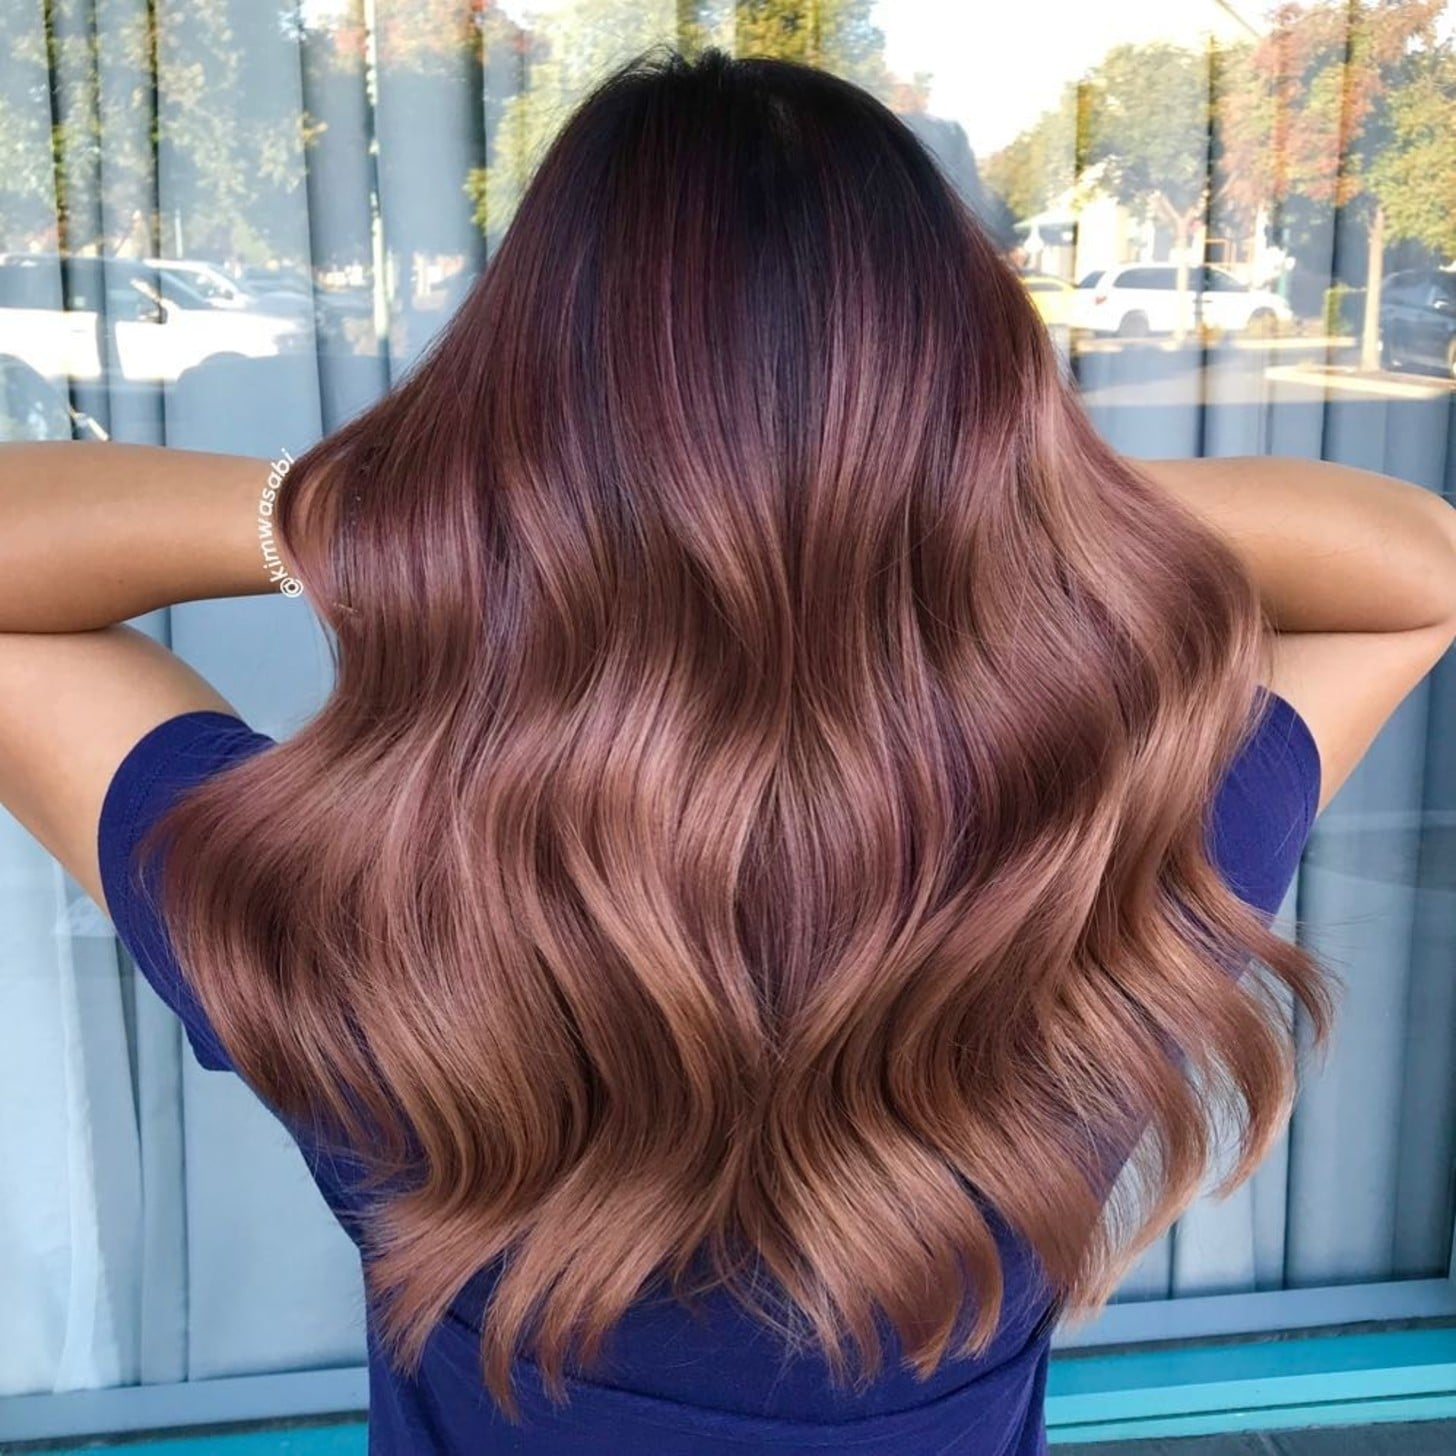 Dye trends for fall 2020